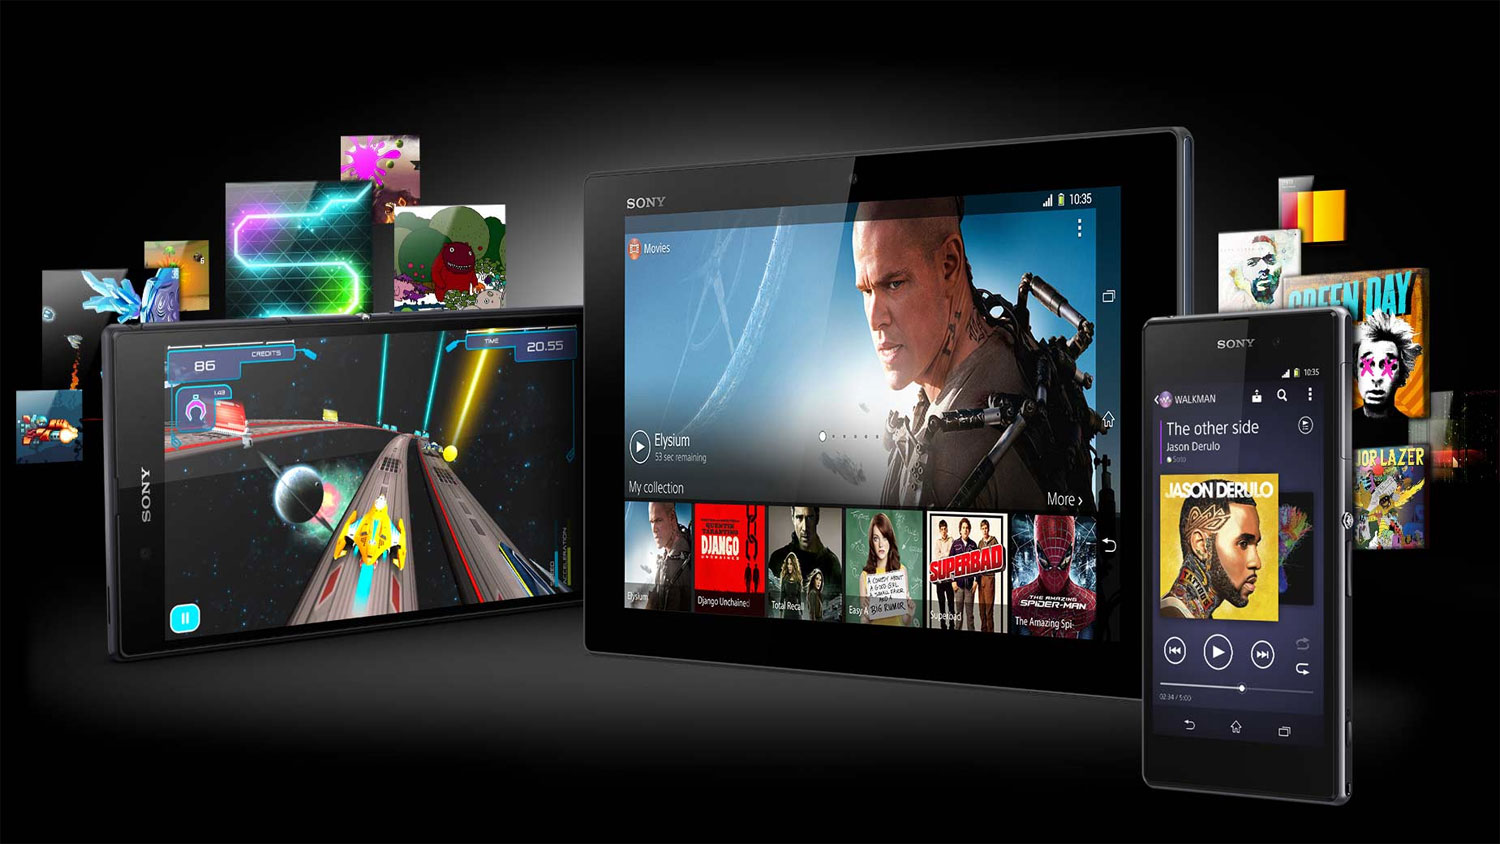 Free games and movies for Xperia Z1, Z Ultra and Tablet Z